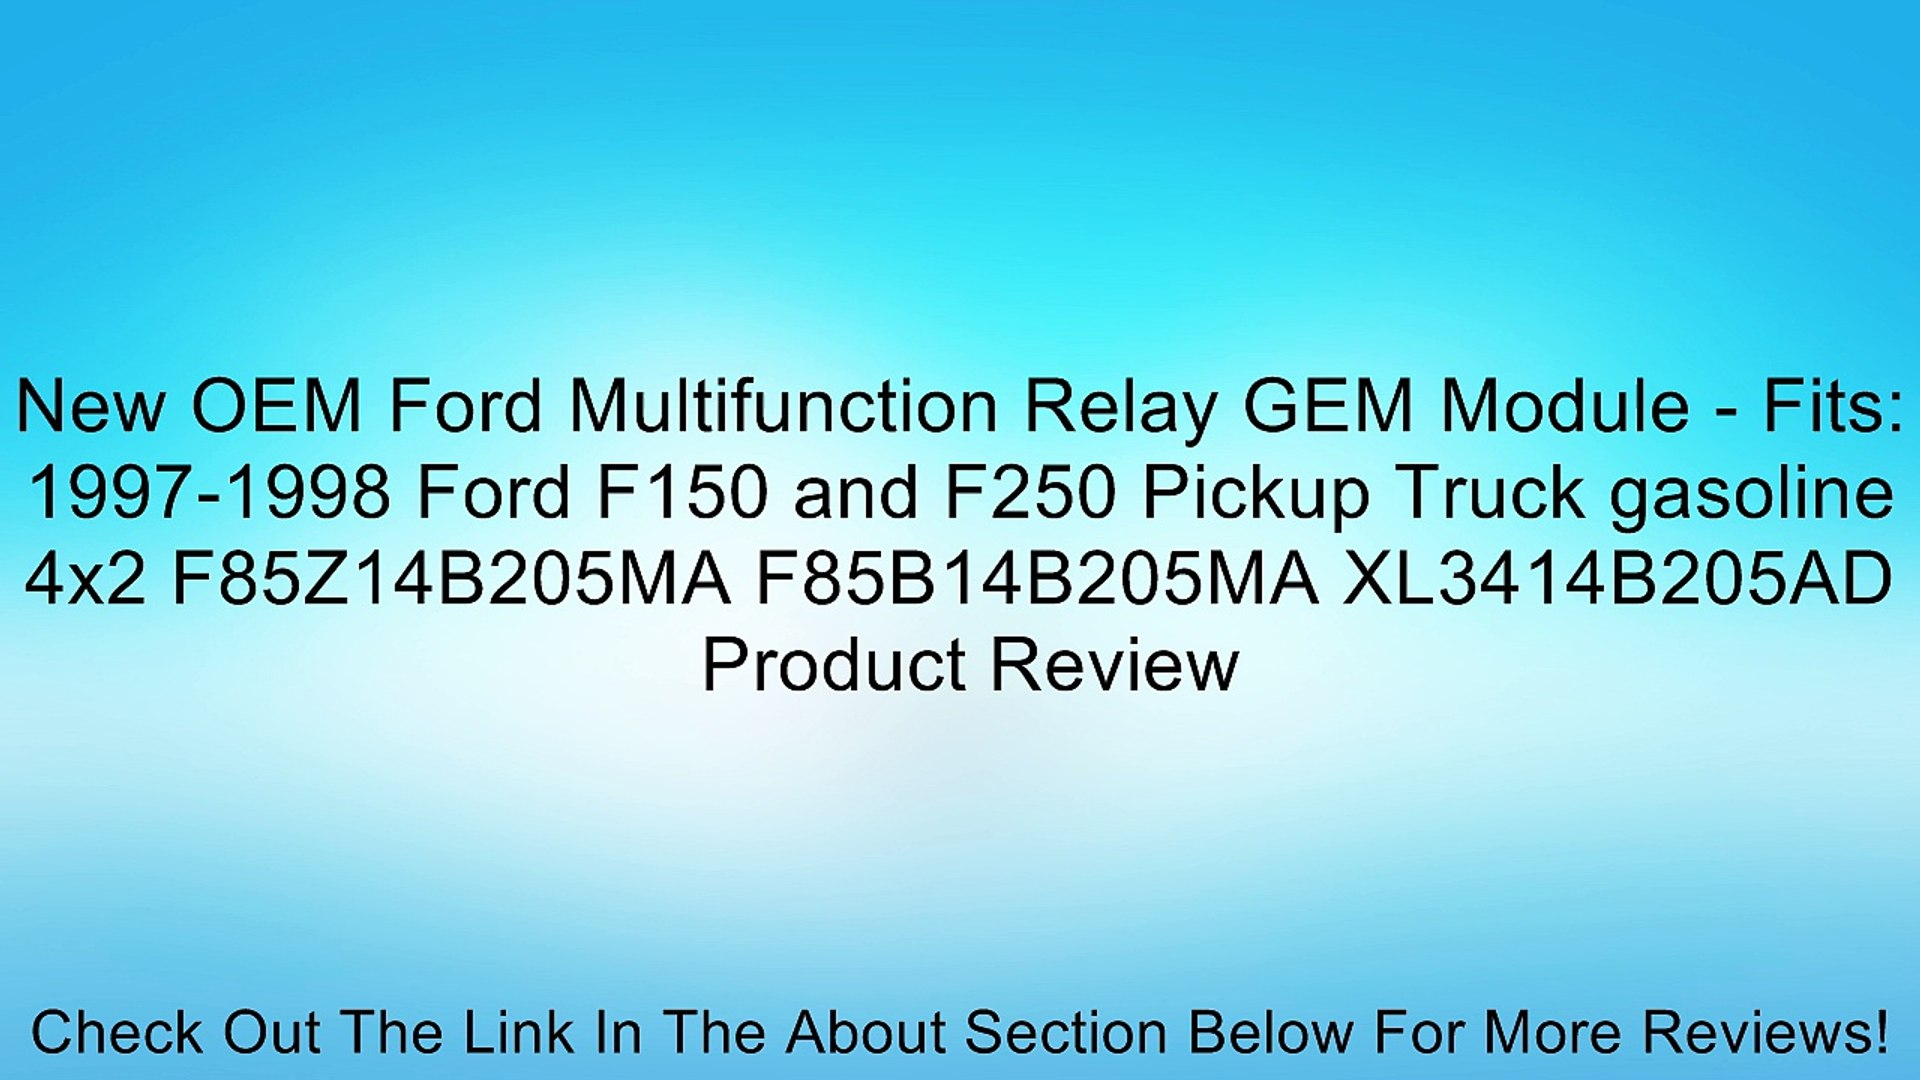 New OEM Ford Multifunction Relay GEM Module - Fits: 1997-1998 Ford F150 and  F250 Pickup Truck gasoline 4x2 F85Z14B205MA F85B14B205MA XL3414B205AD Review